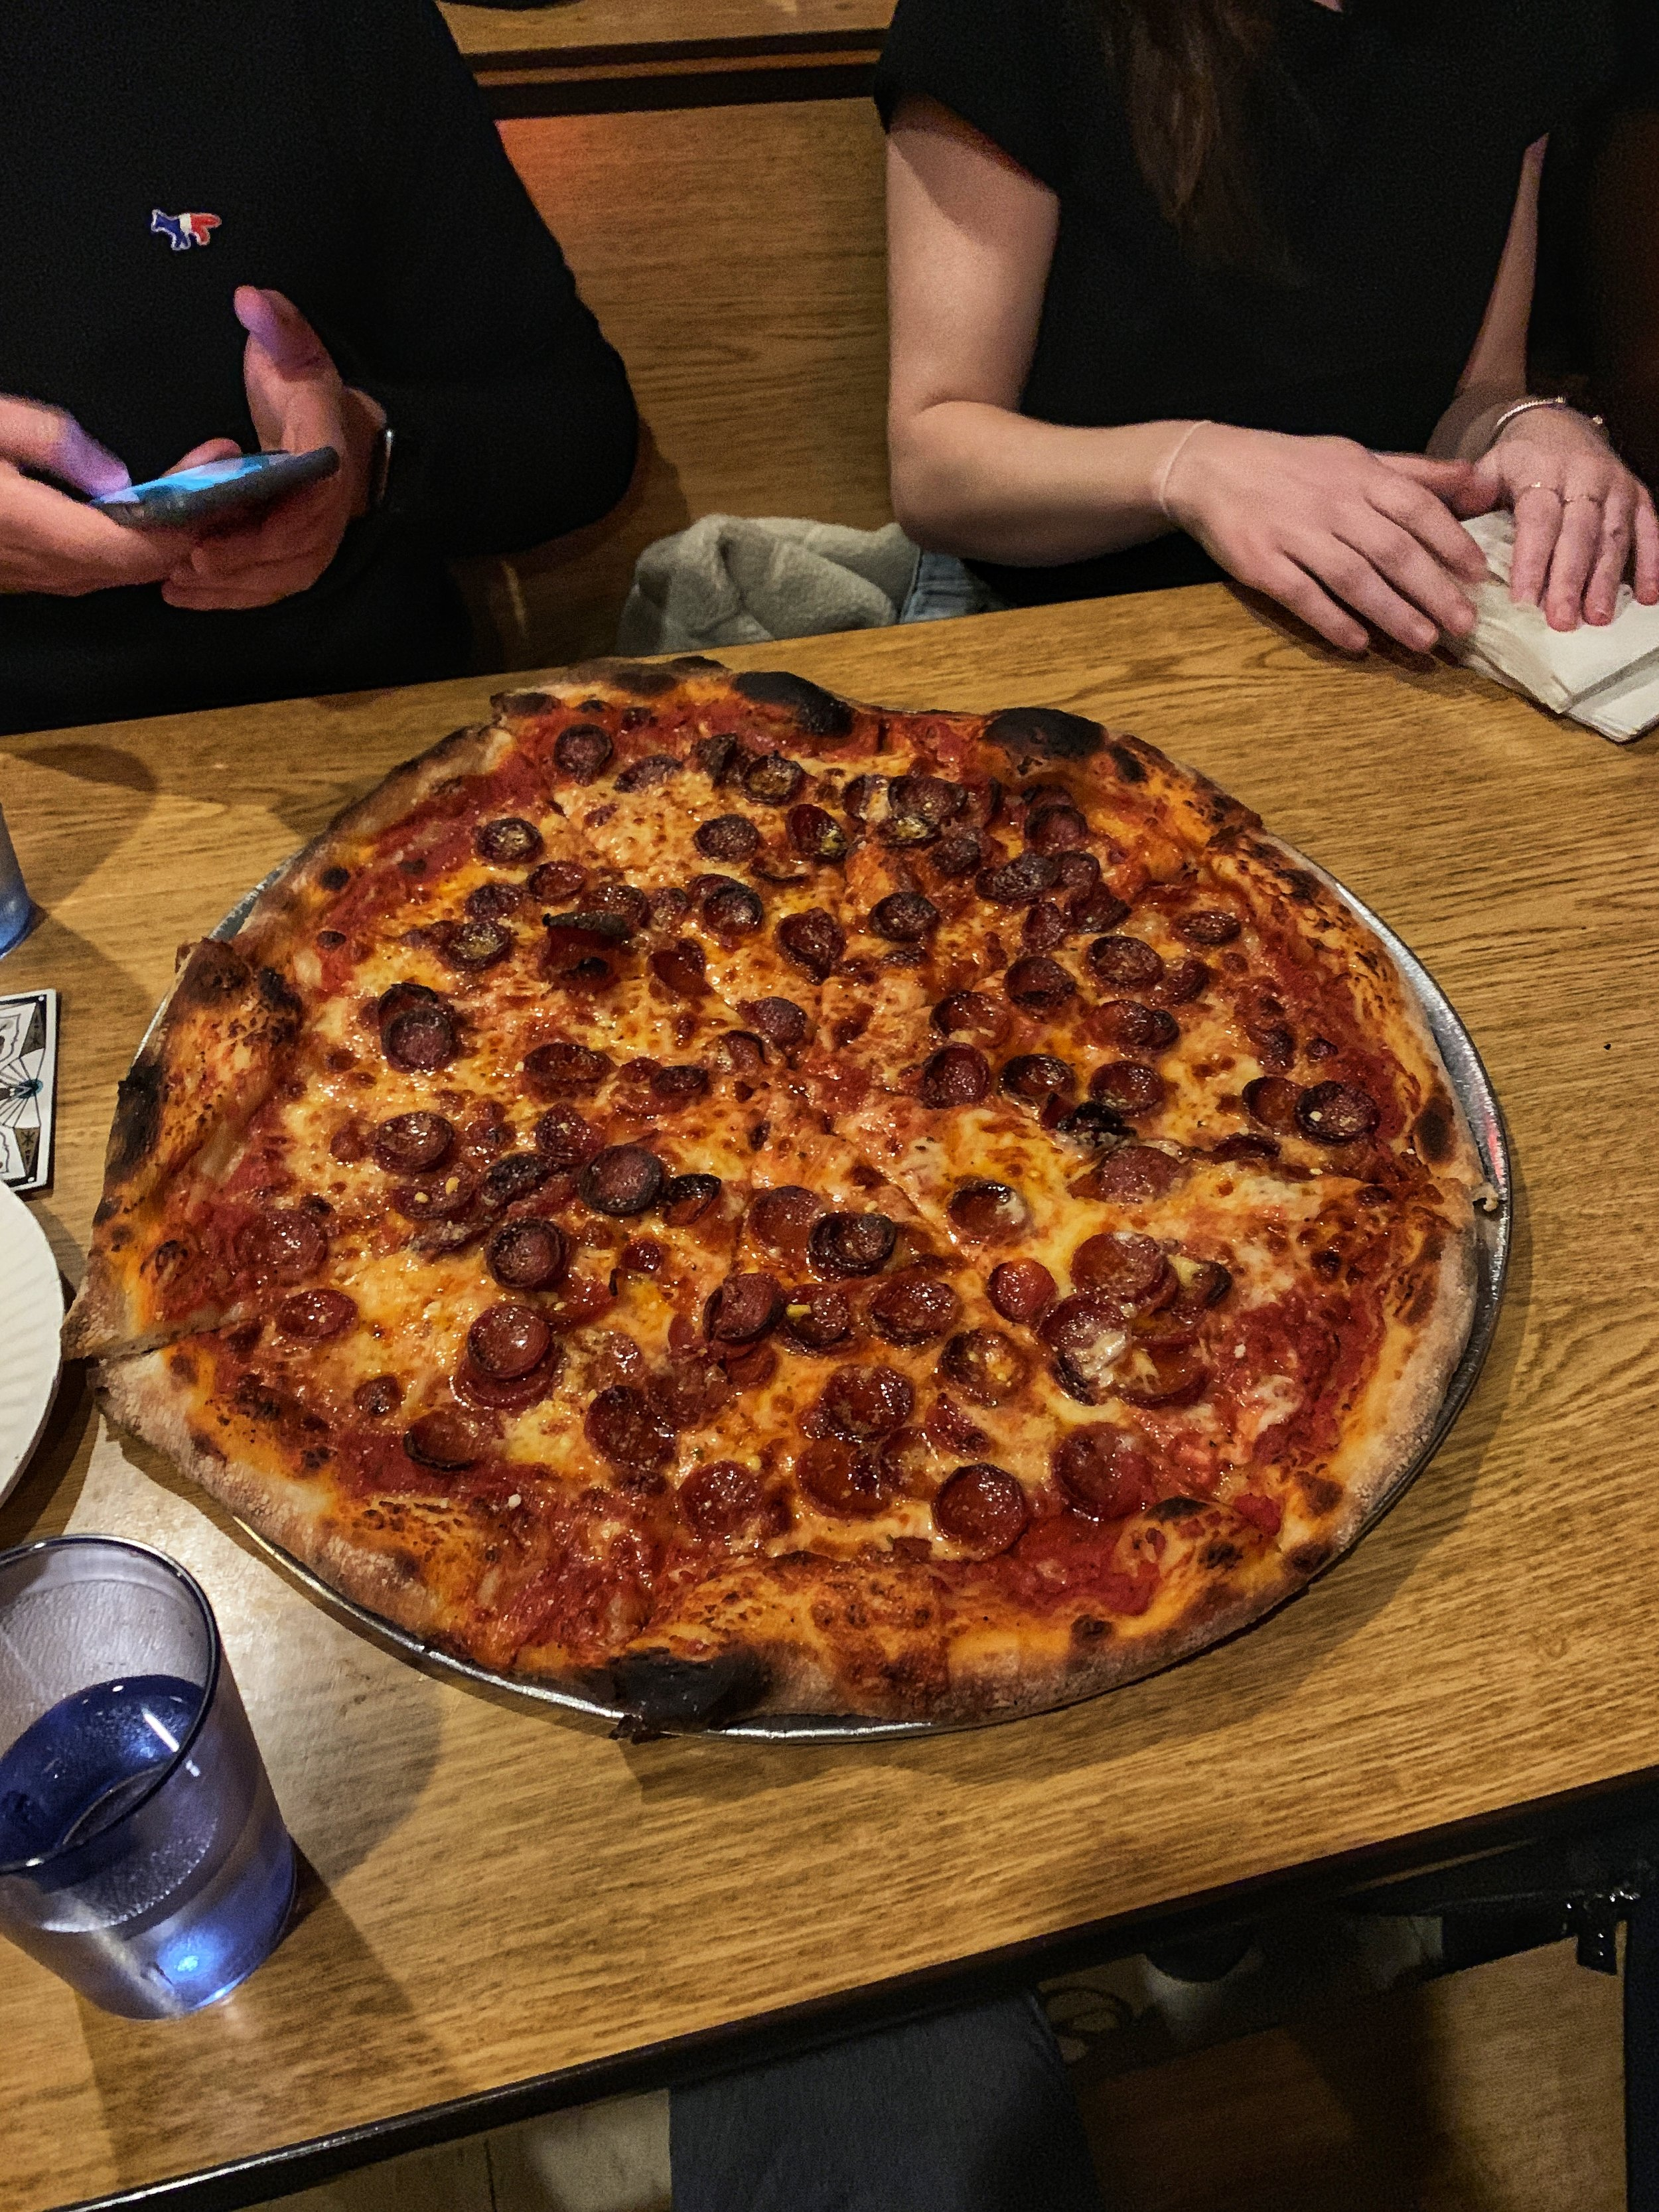 Life is better with pizza. And friends too, I guess.